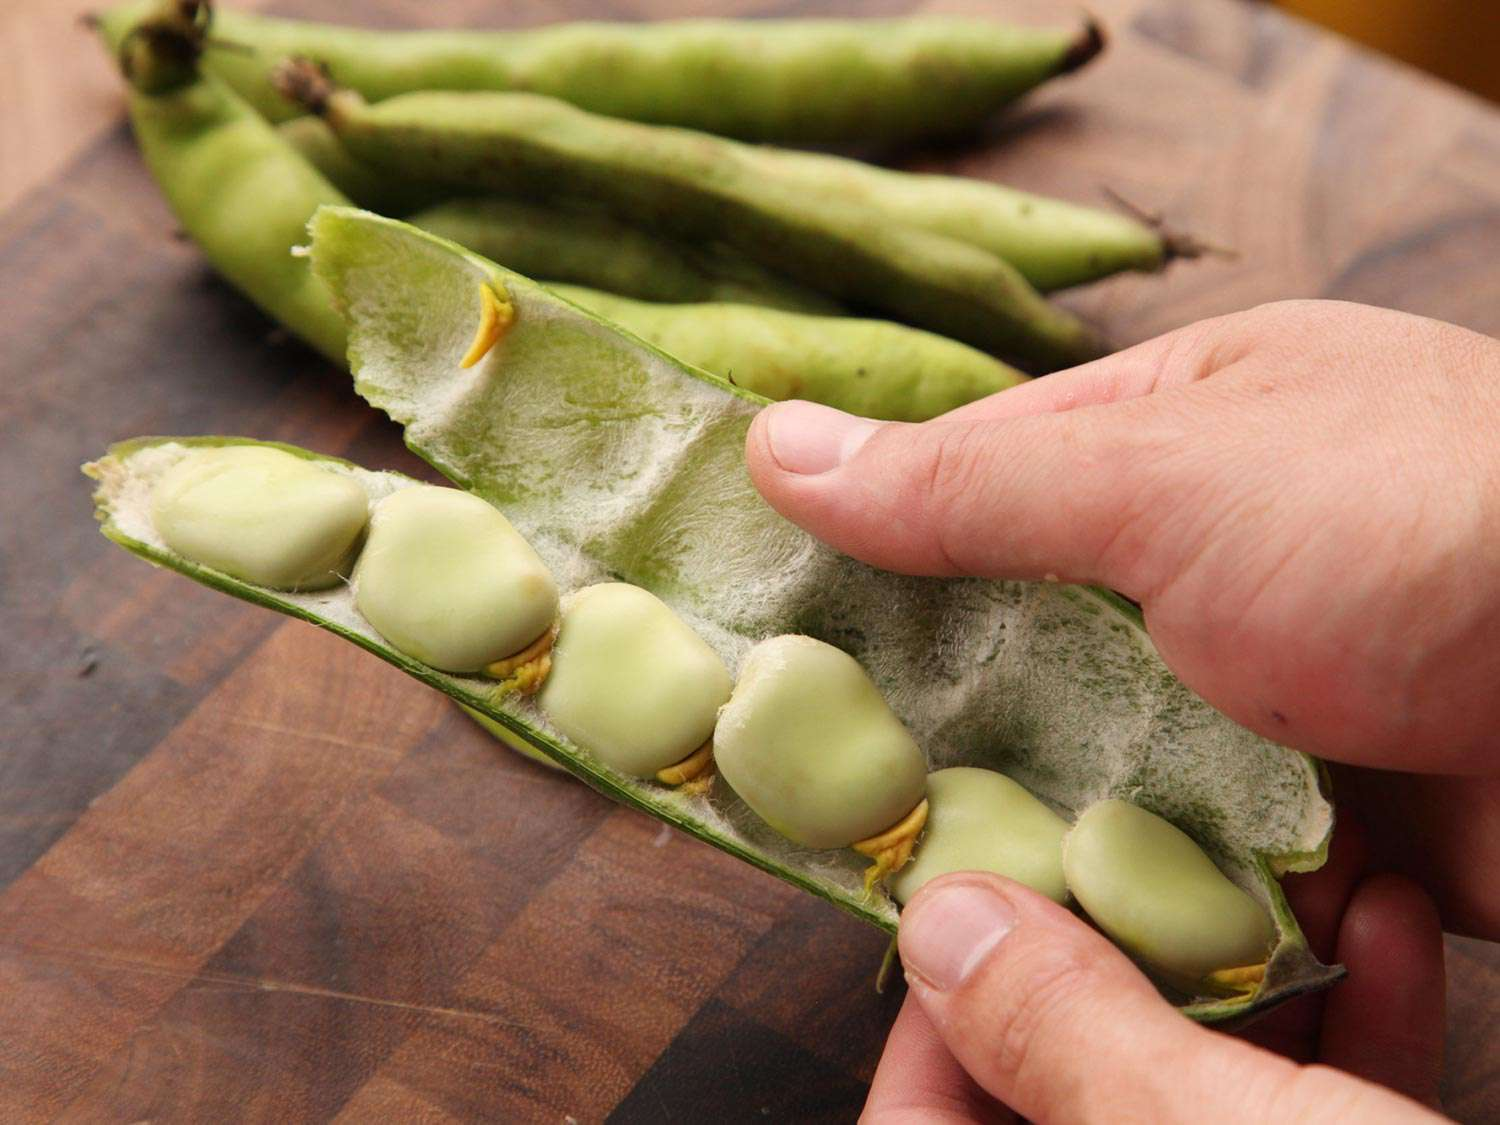 20150504-how-to-prepare-spring-green-produce06.jpg